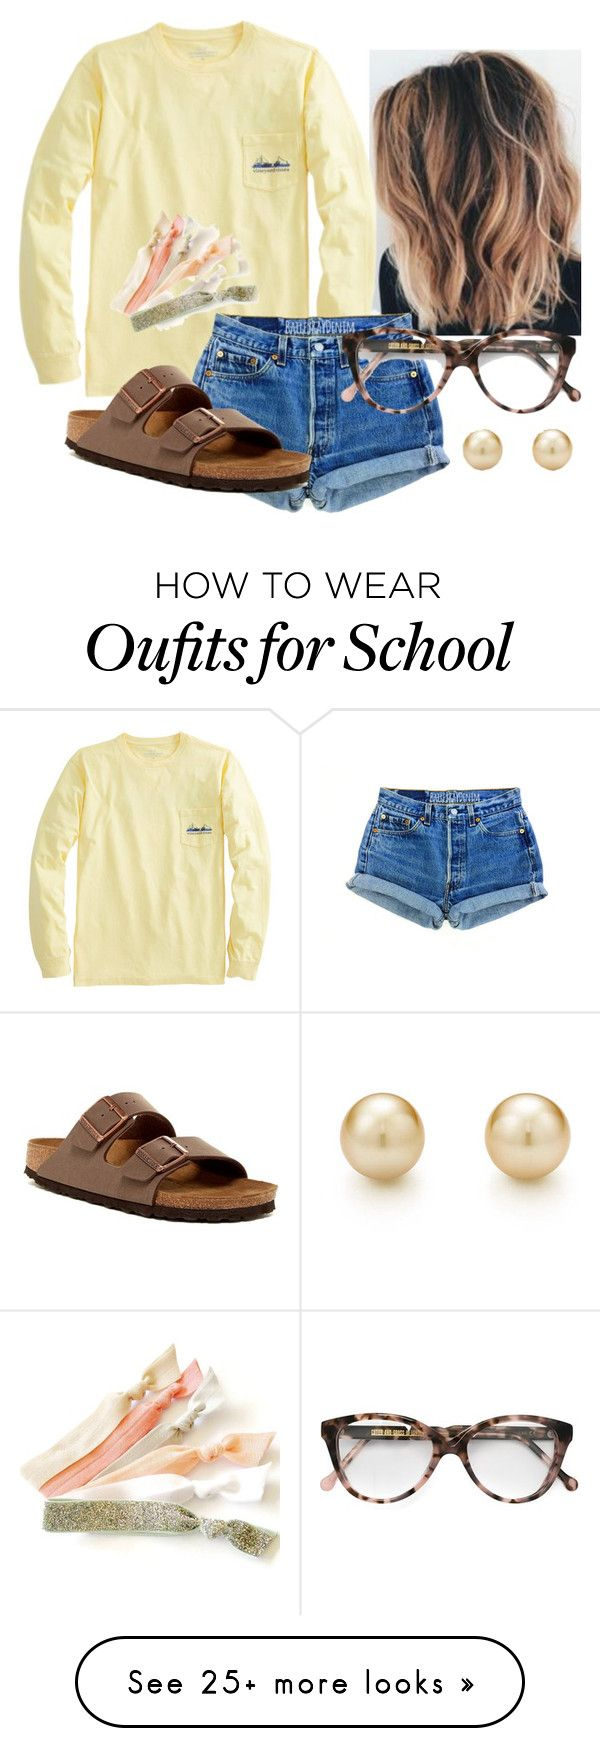 """Casual Spring!"" by katie-1111 on Polyvore featuring Birkenstock, Tiffany & Co. and Cutler and Gross"